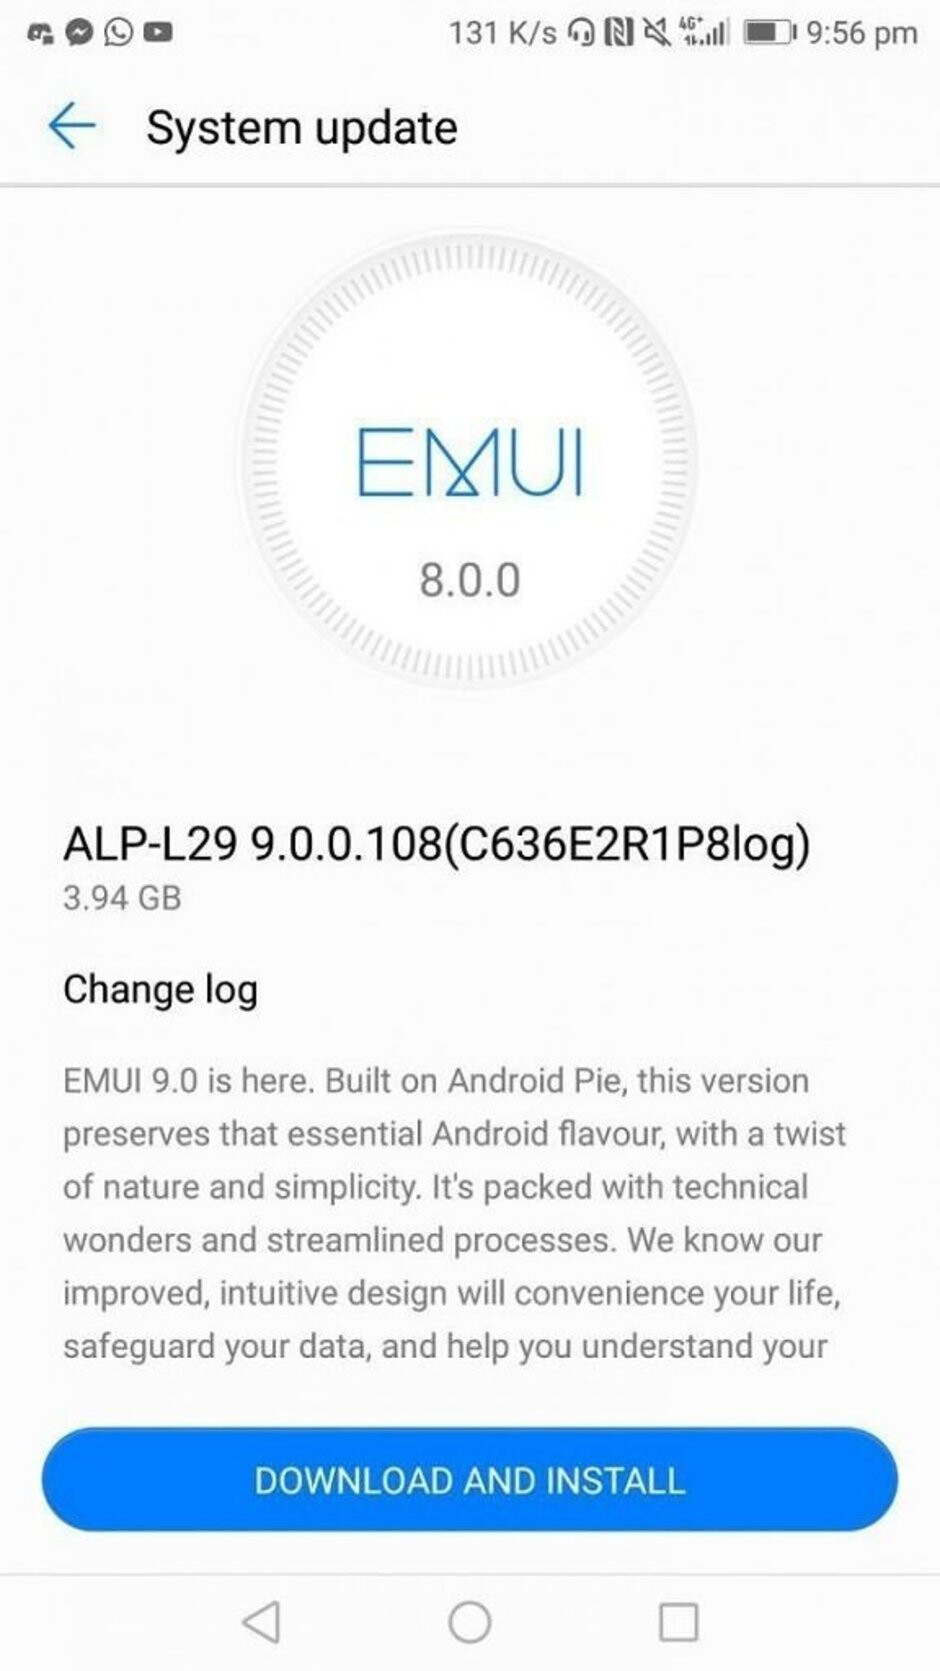 Huawei Mate 10 starts receiving Android 9 Pie update, huge download size